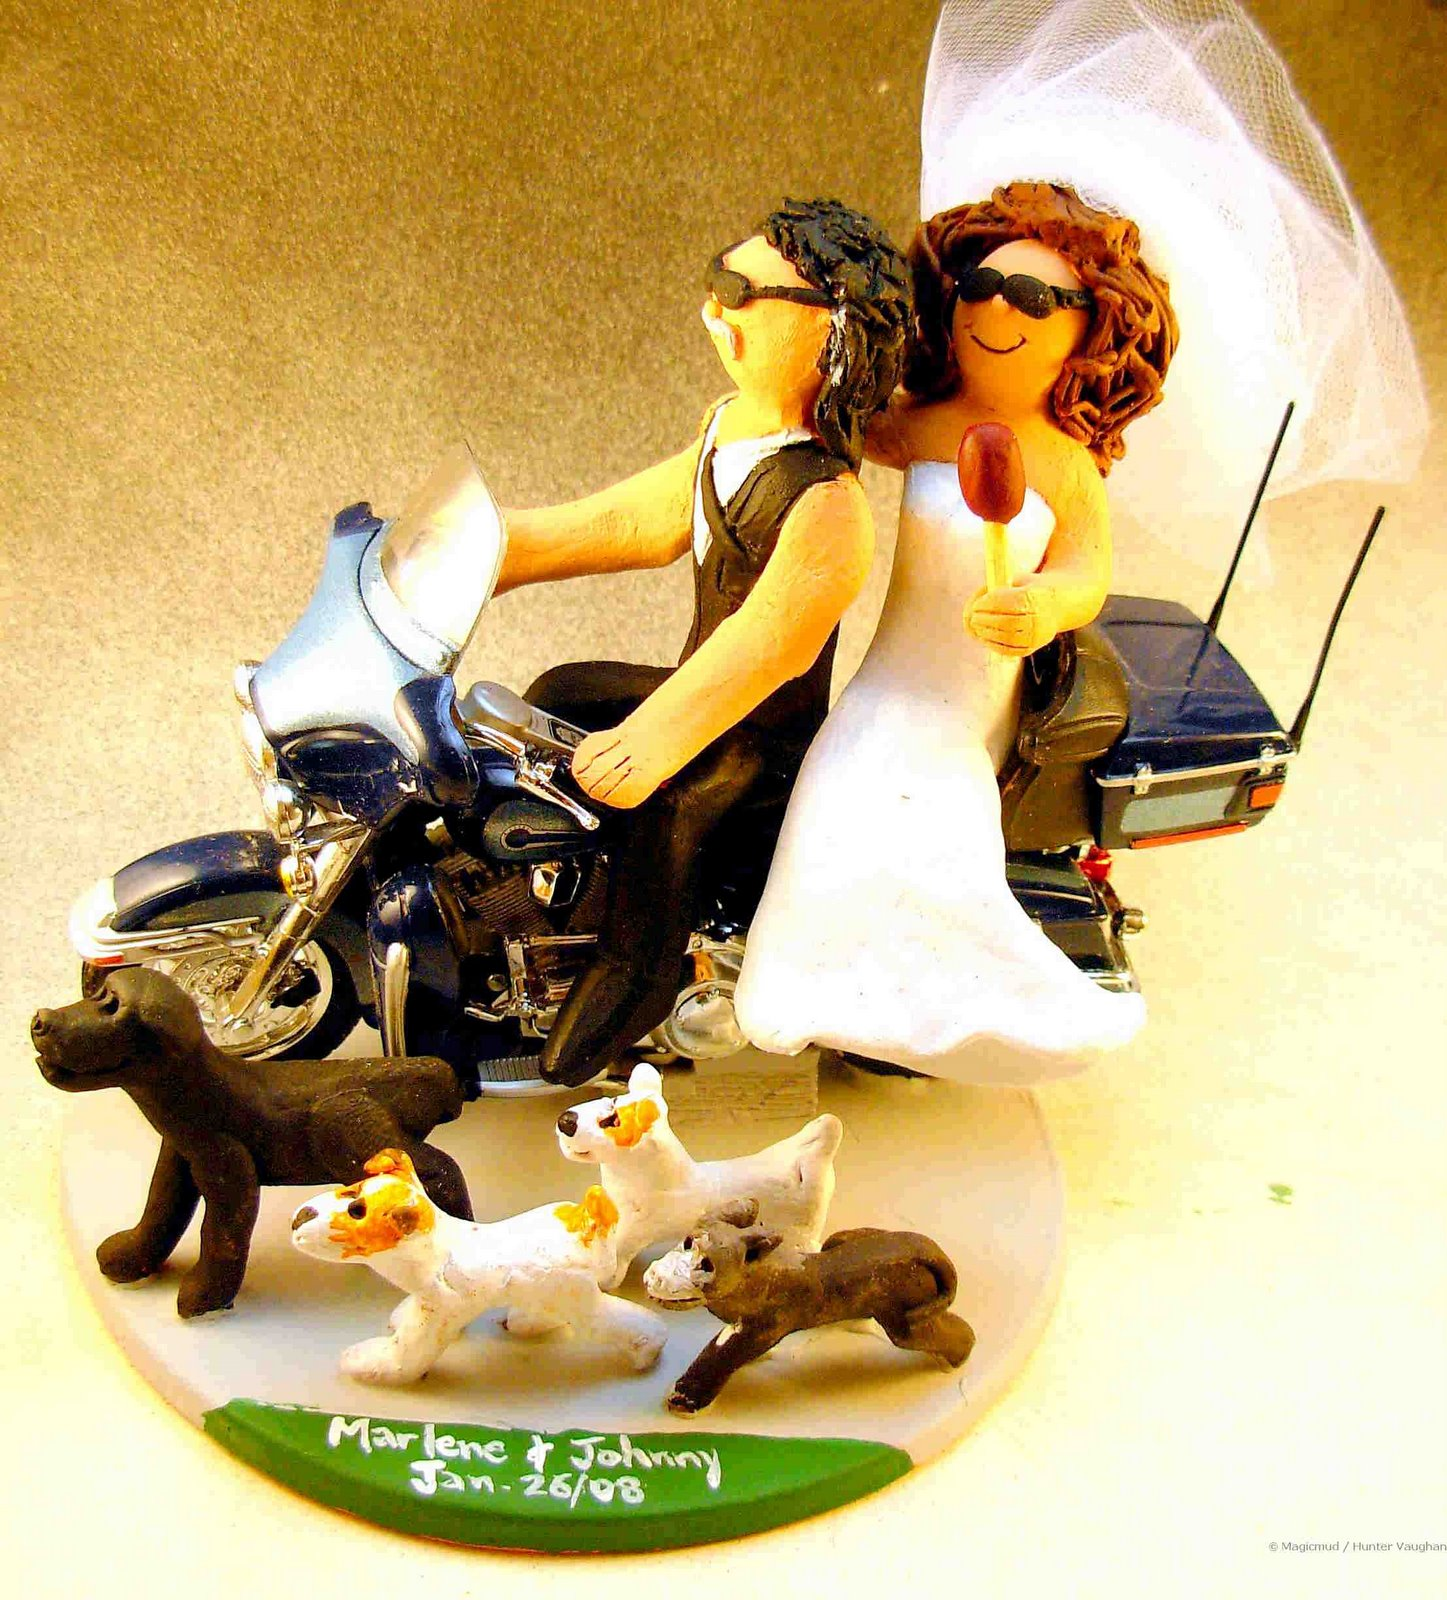 custom wedding cake toppers: February 2008